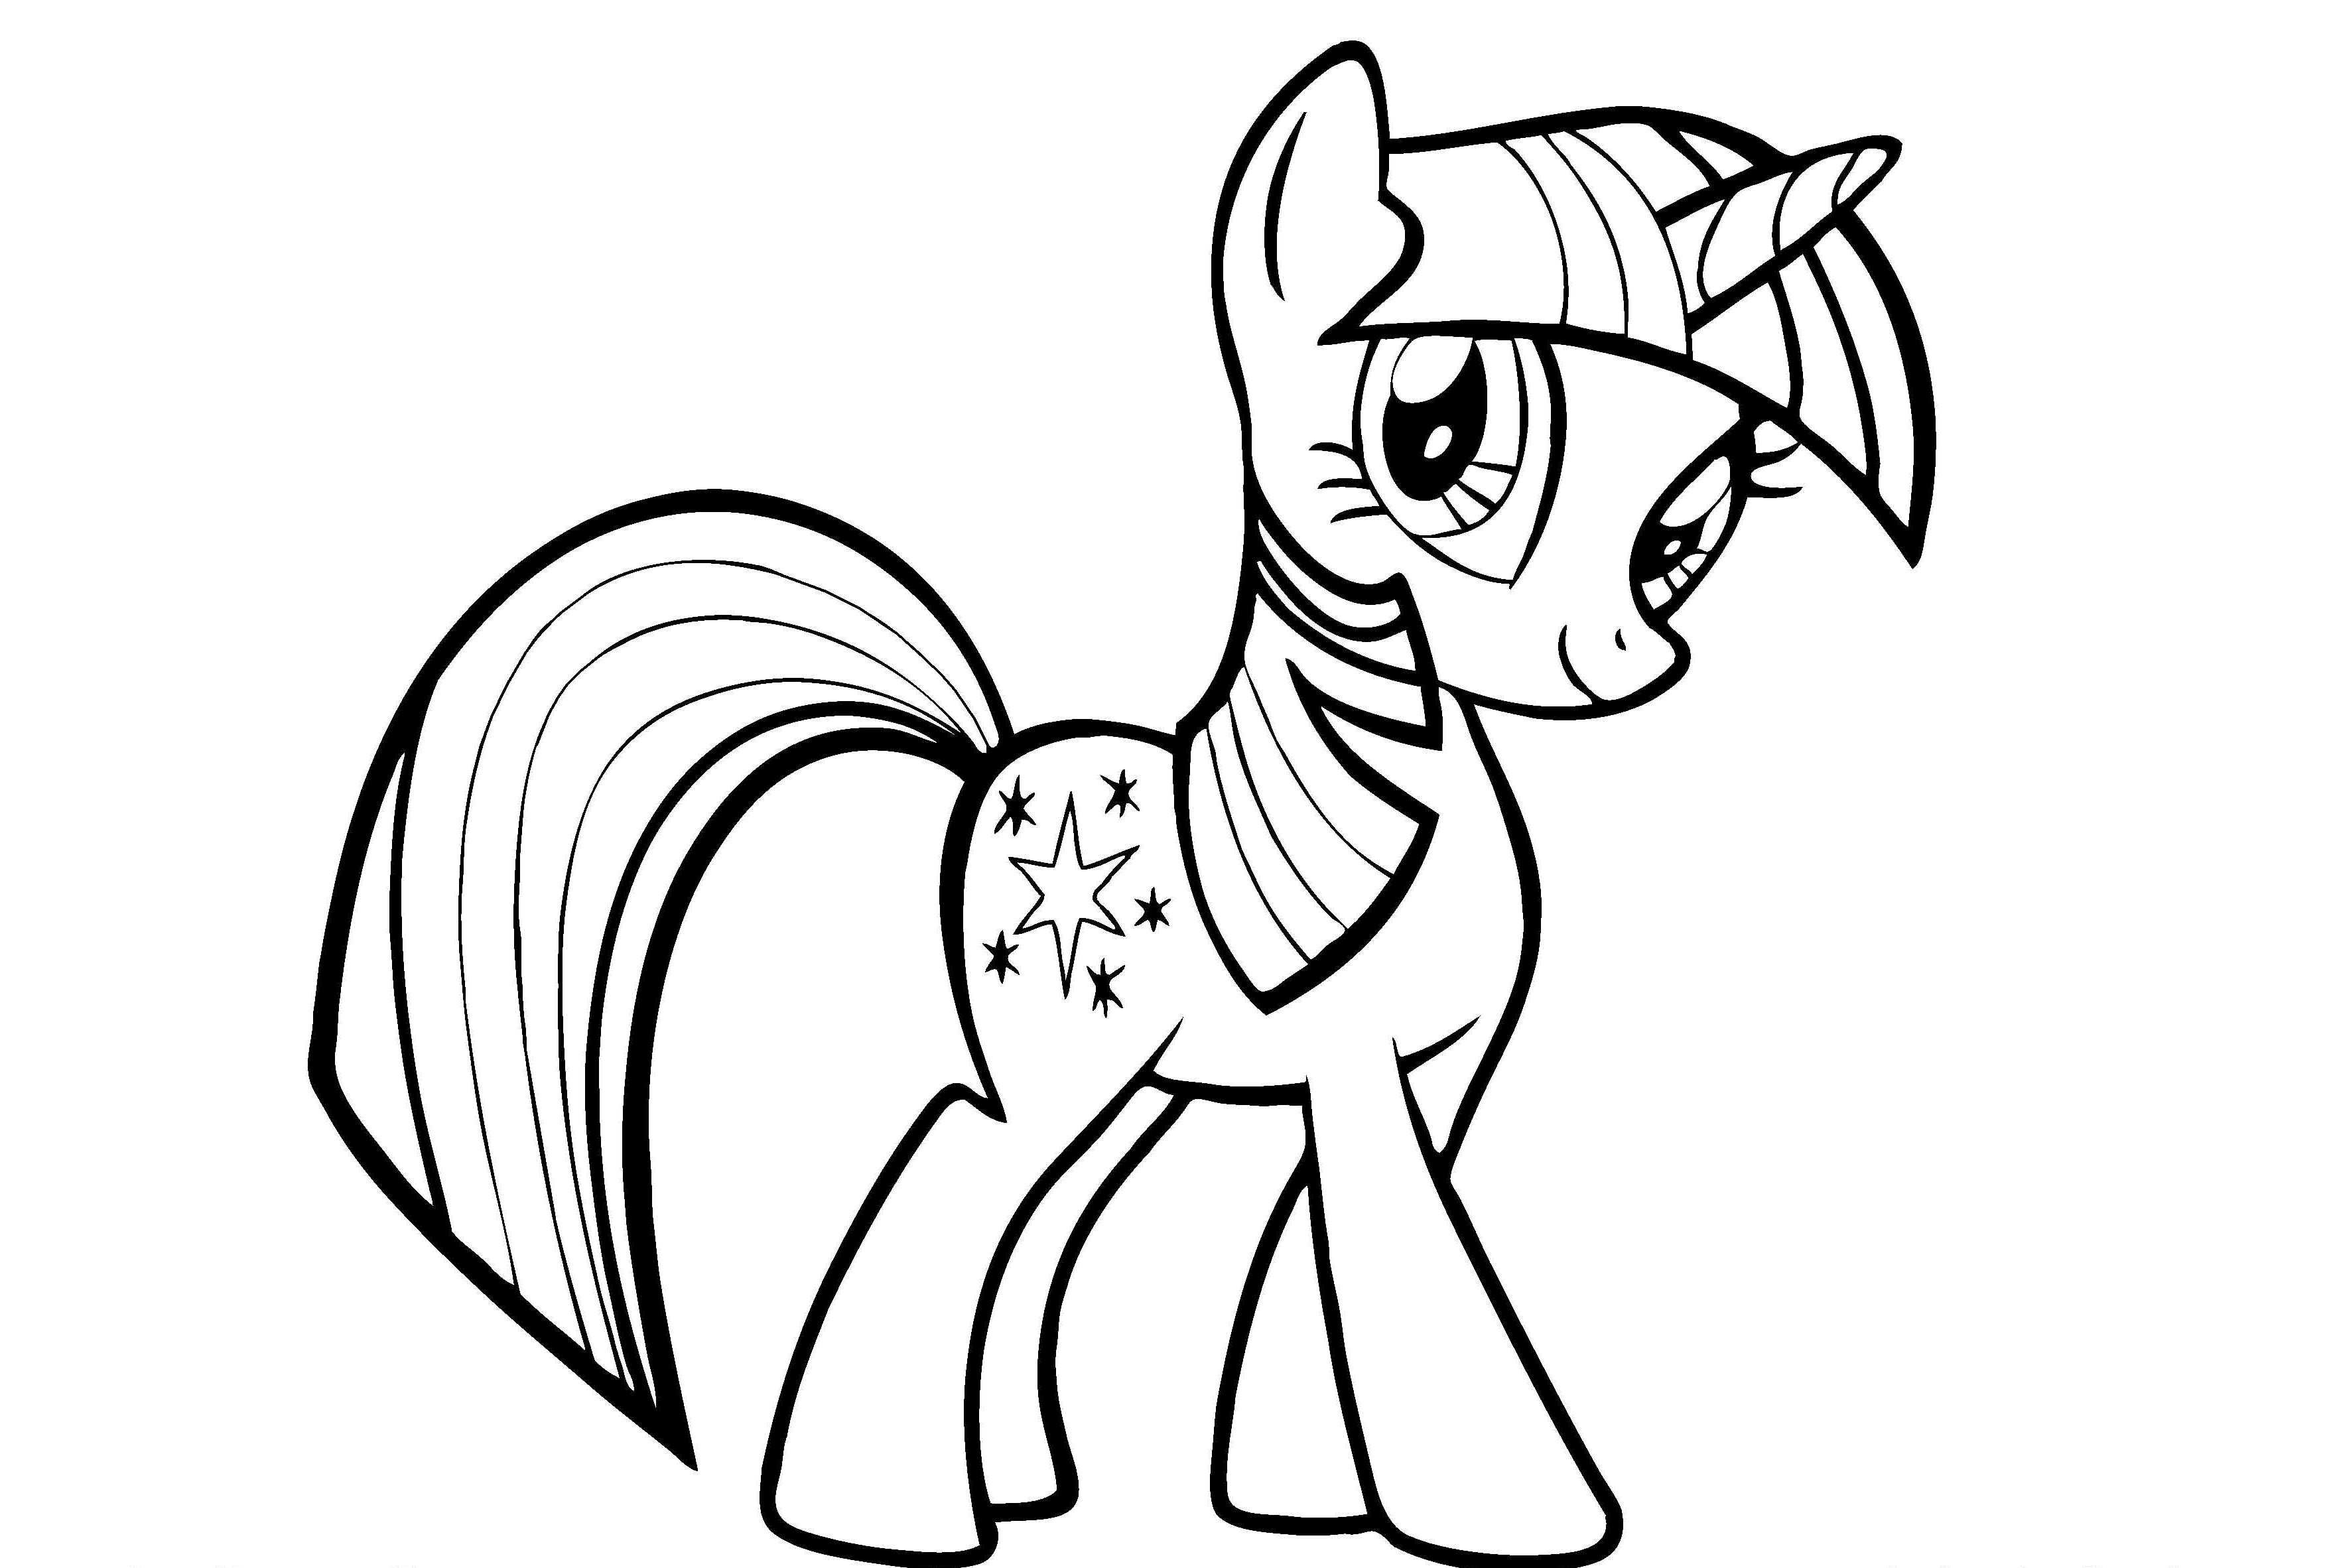 My little pony twilight sparkle coloring pages through the thousand photos online in relation to my little pony twilight sparkle coloring pages selects